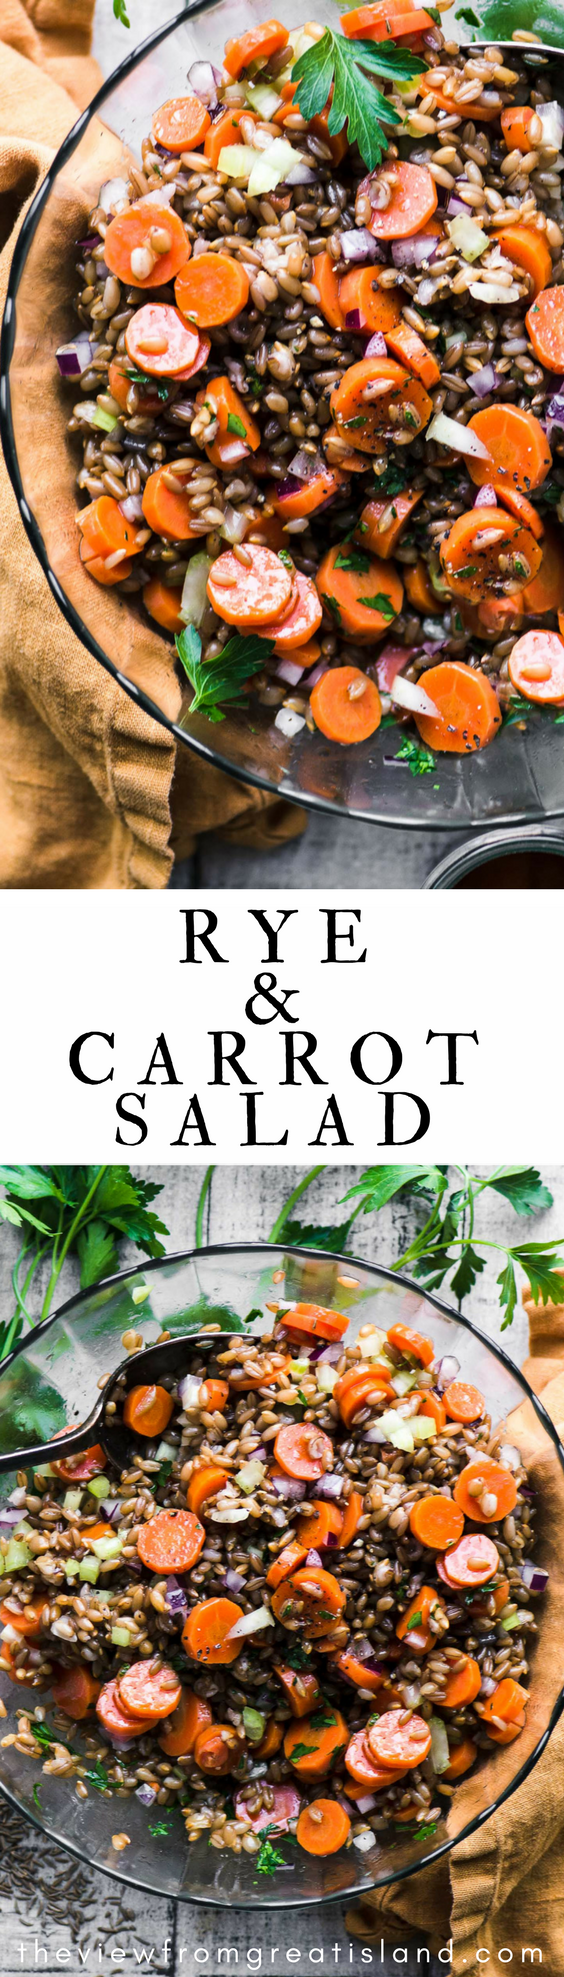 Rye and Carrot Salad ~ I'm all about grain salads in the cooler months, and this one made with healthy rye berries is wholesome, satisfying, and incredibly tasty! Serve it as a side dish or turn it into a week's worth of working lunches! #salad #grainsalad #wholegrain #ryeberries #wintersalad #healthygrains #carrots #highfiber #lunch #ancientgrains #vegan #vegetarian #vinaigrette #fallsalad #holidaysalad